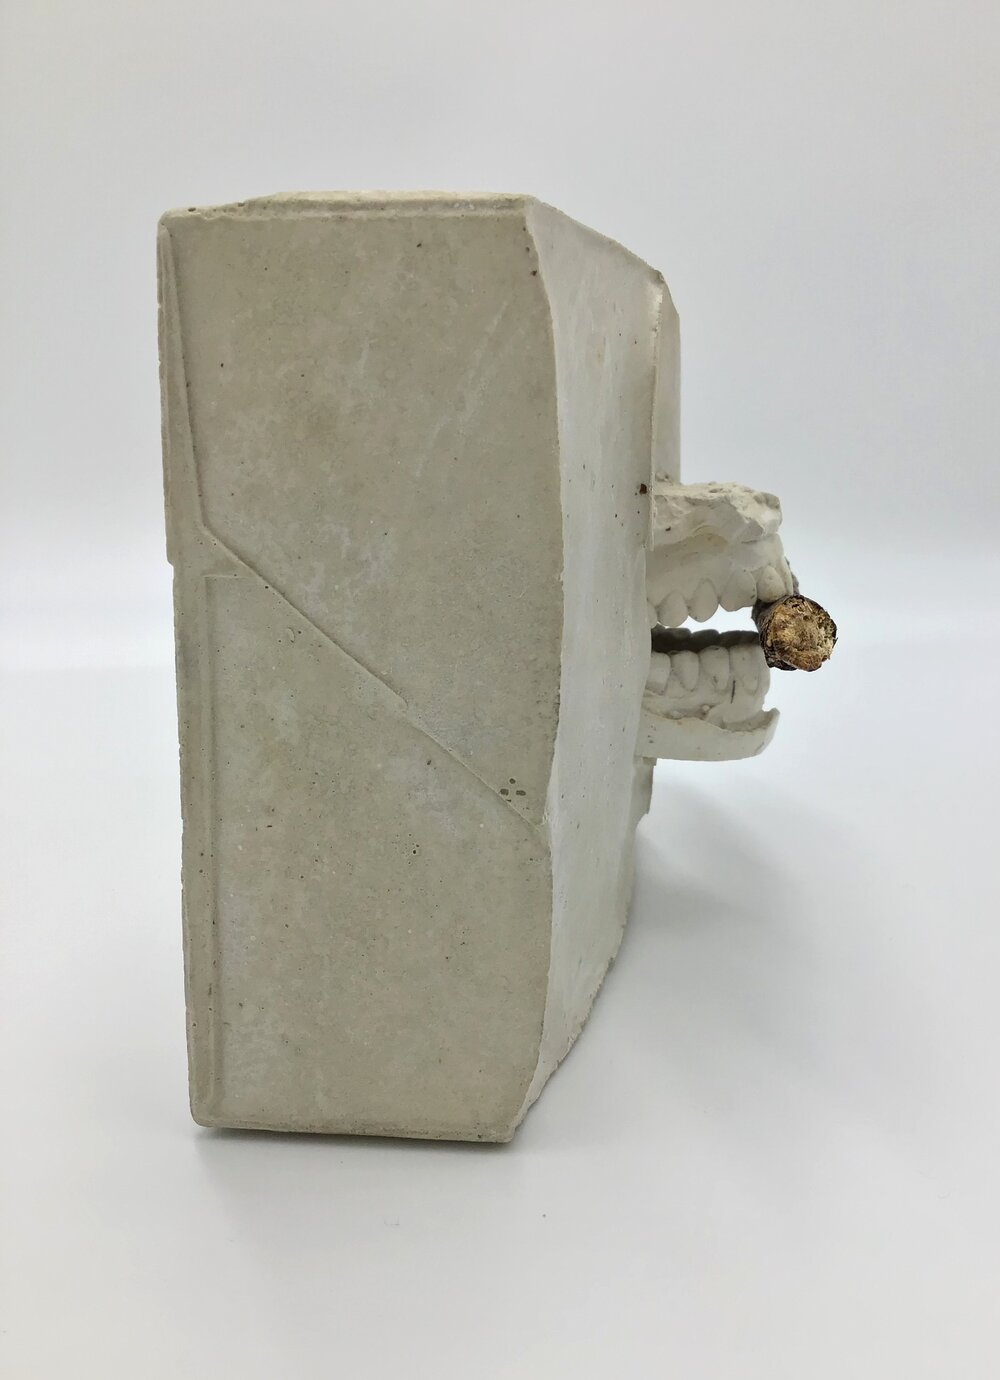 "Bite,  wood and plaster 5"" high X 8.5"" long X 3.5"" wide (2019)"